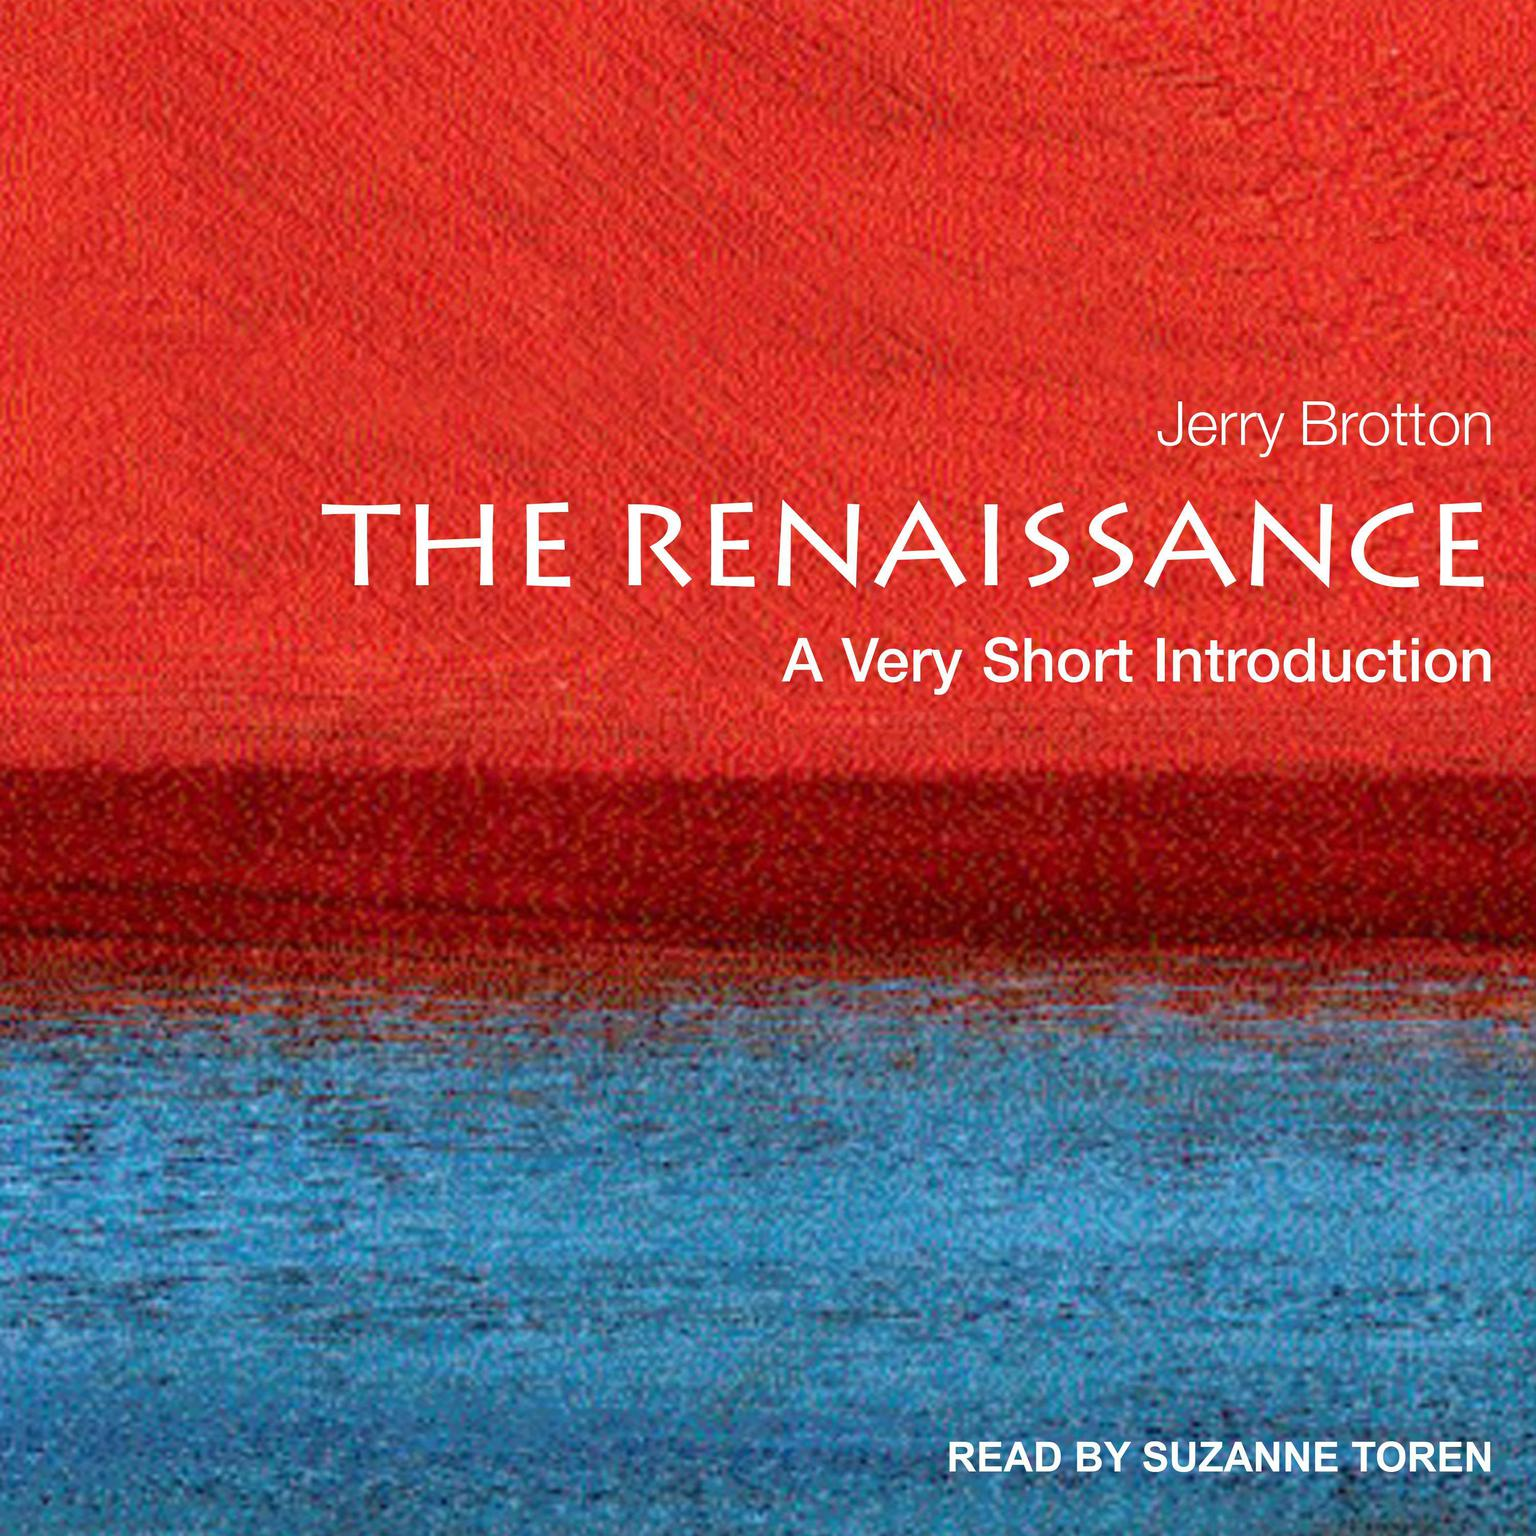 The Renaissance: A Very Short Introduction Audiobook, by Jerry Brotton